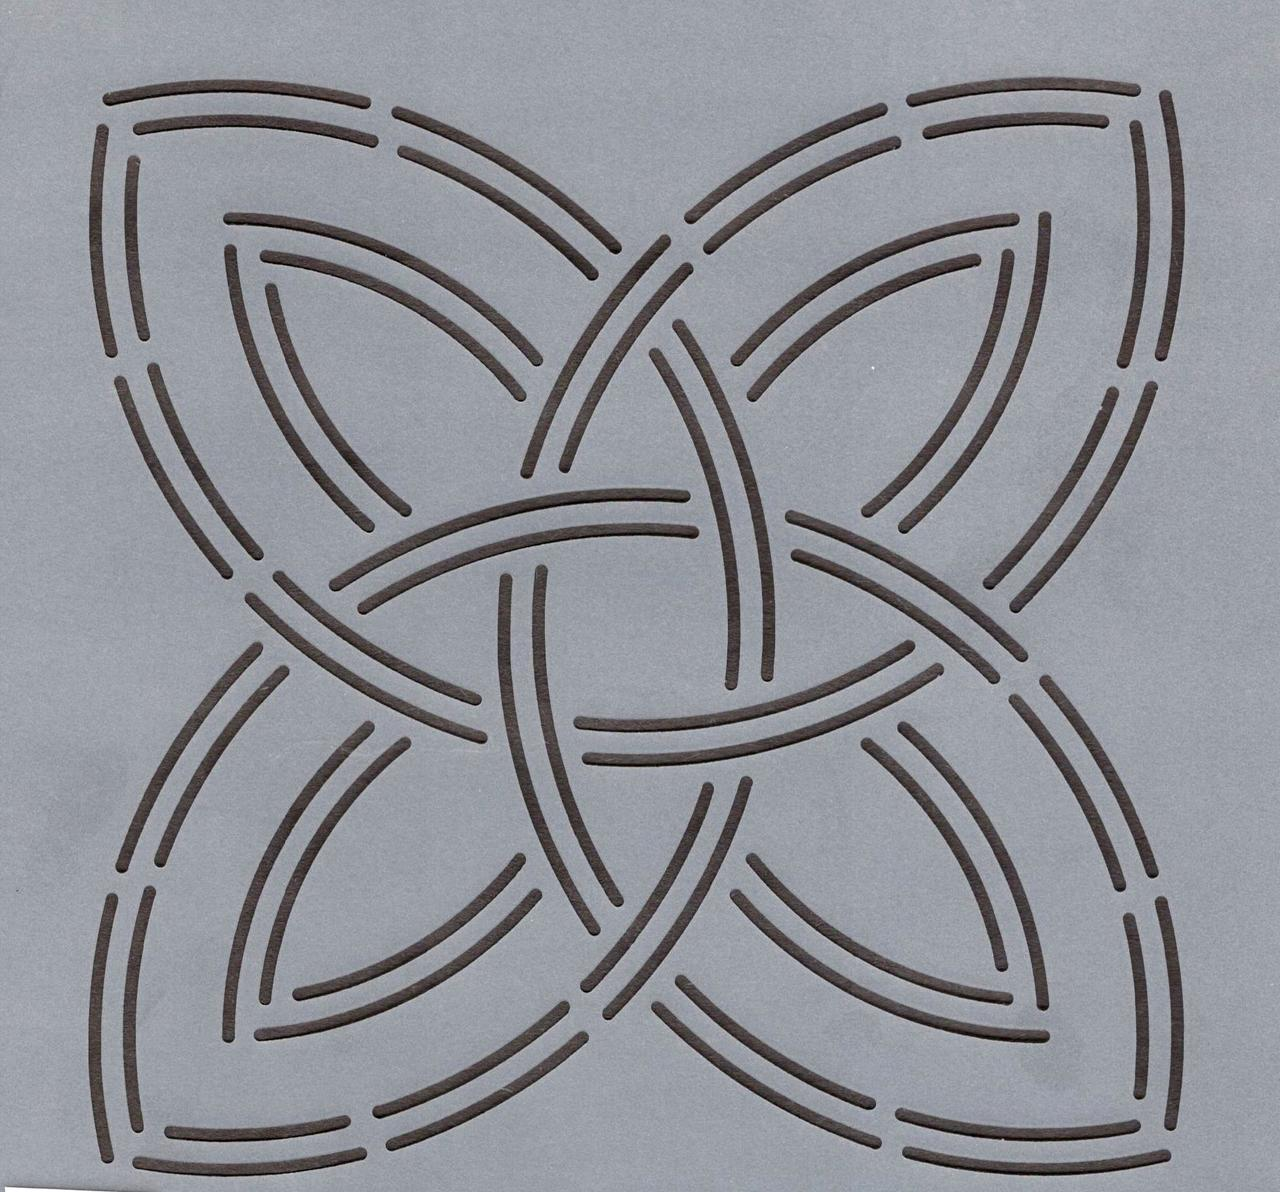 Celtic Design #2 - 5.5